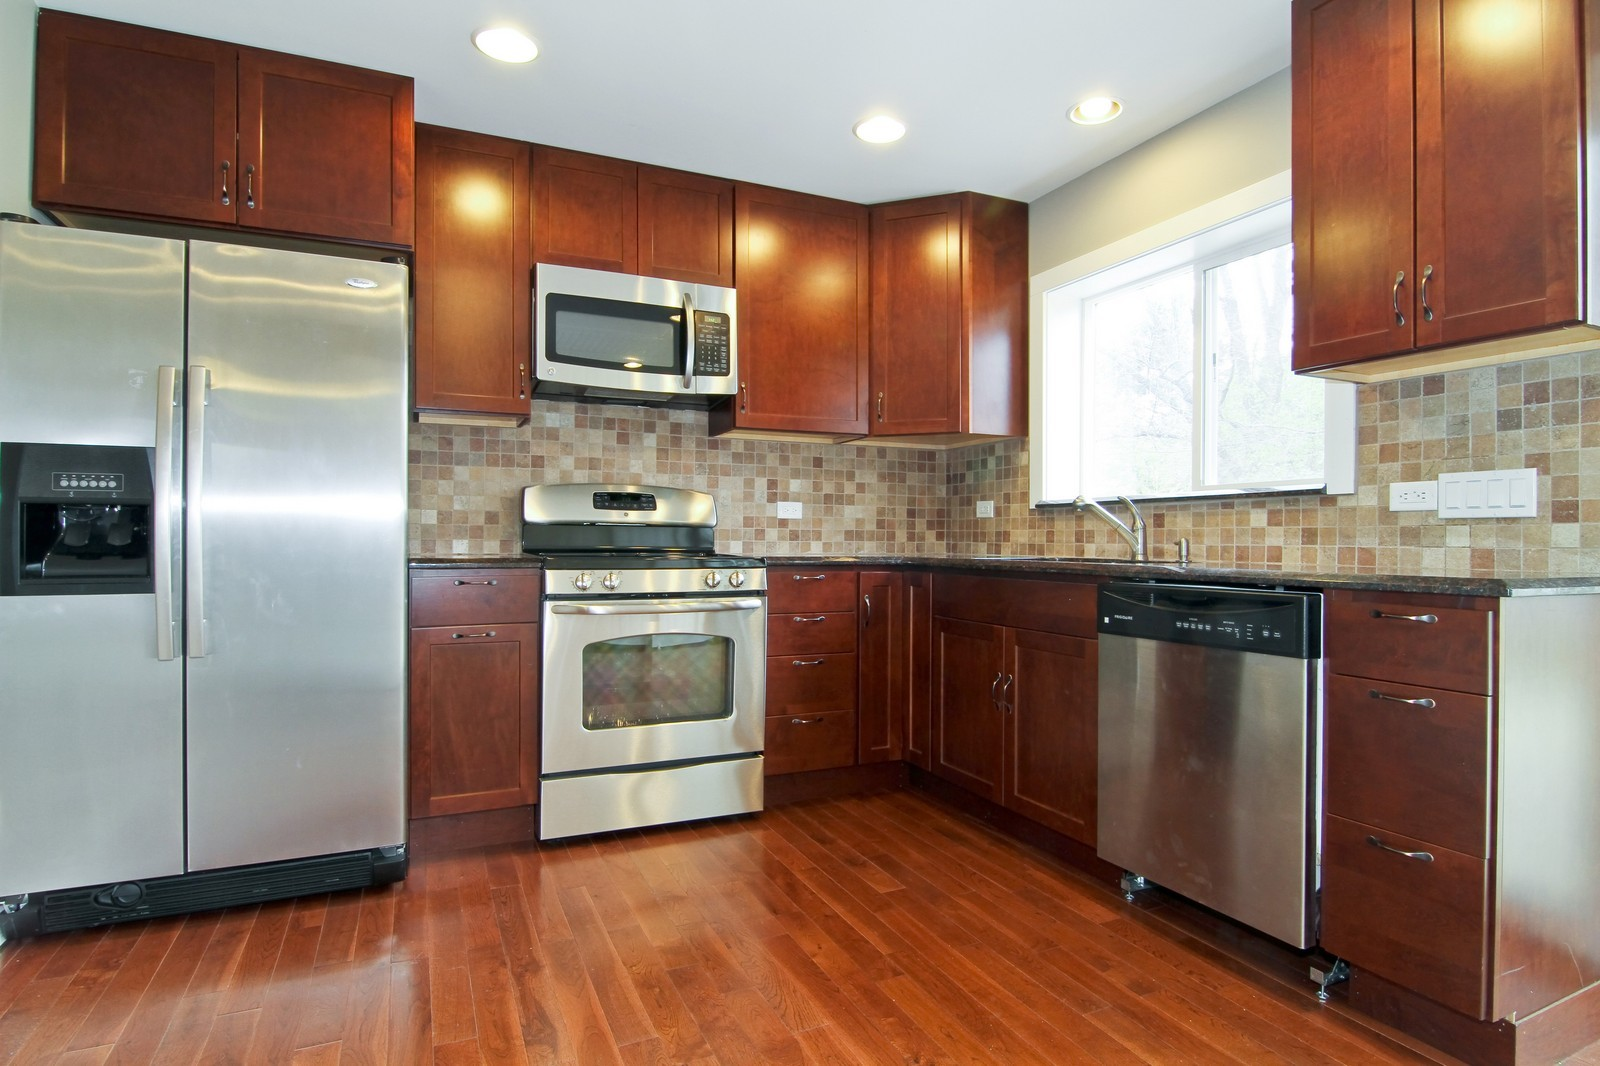 Real Estate Photography - 406 N Garfield St, Lombard, IL, 60148 - Kitchen